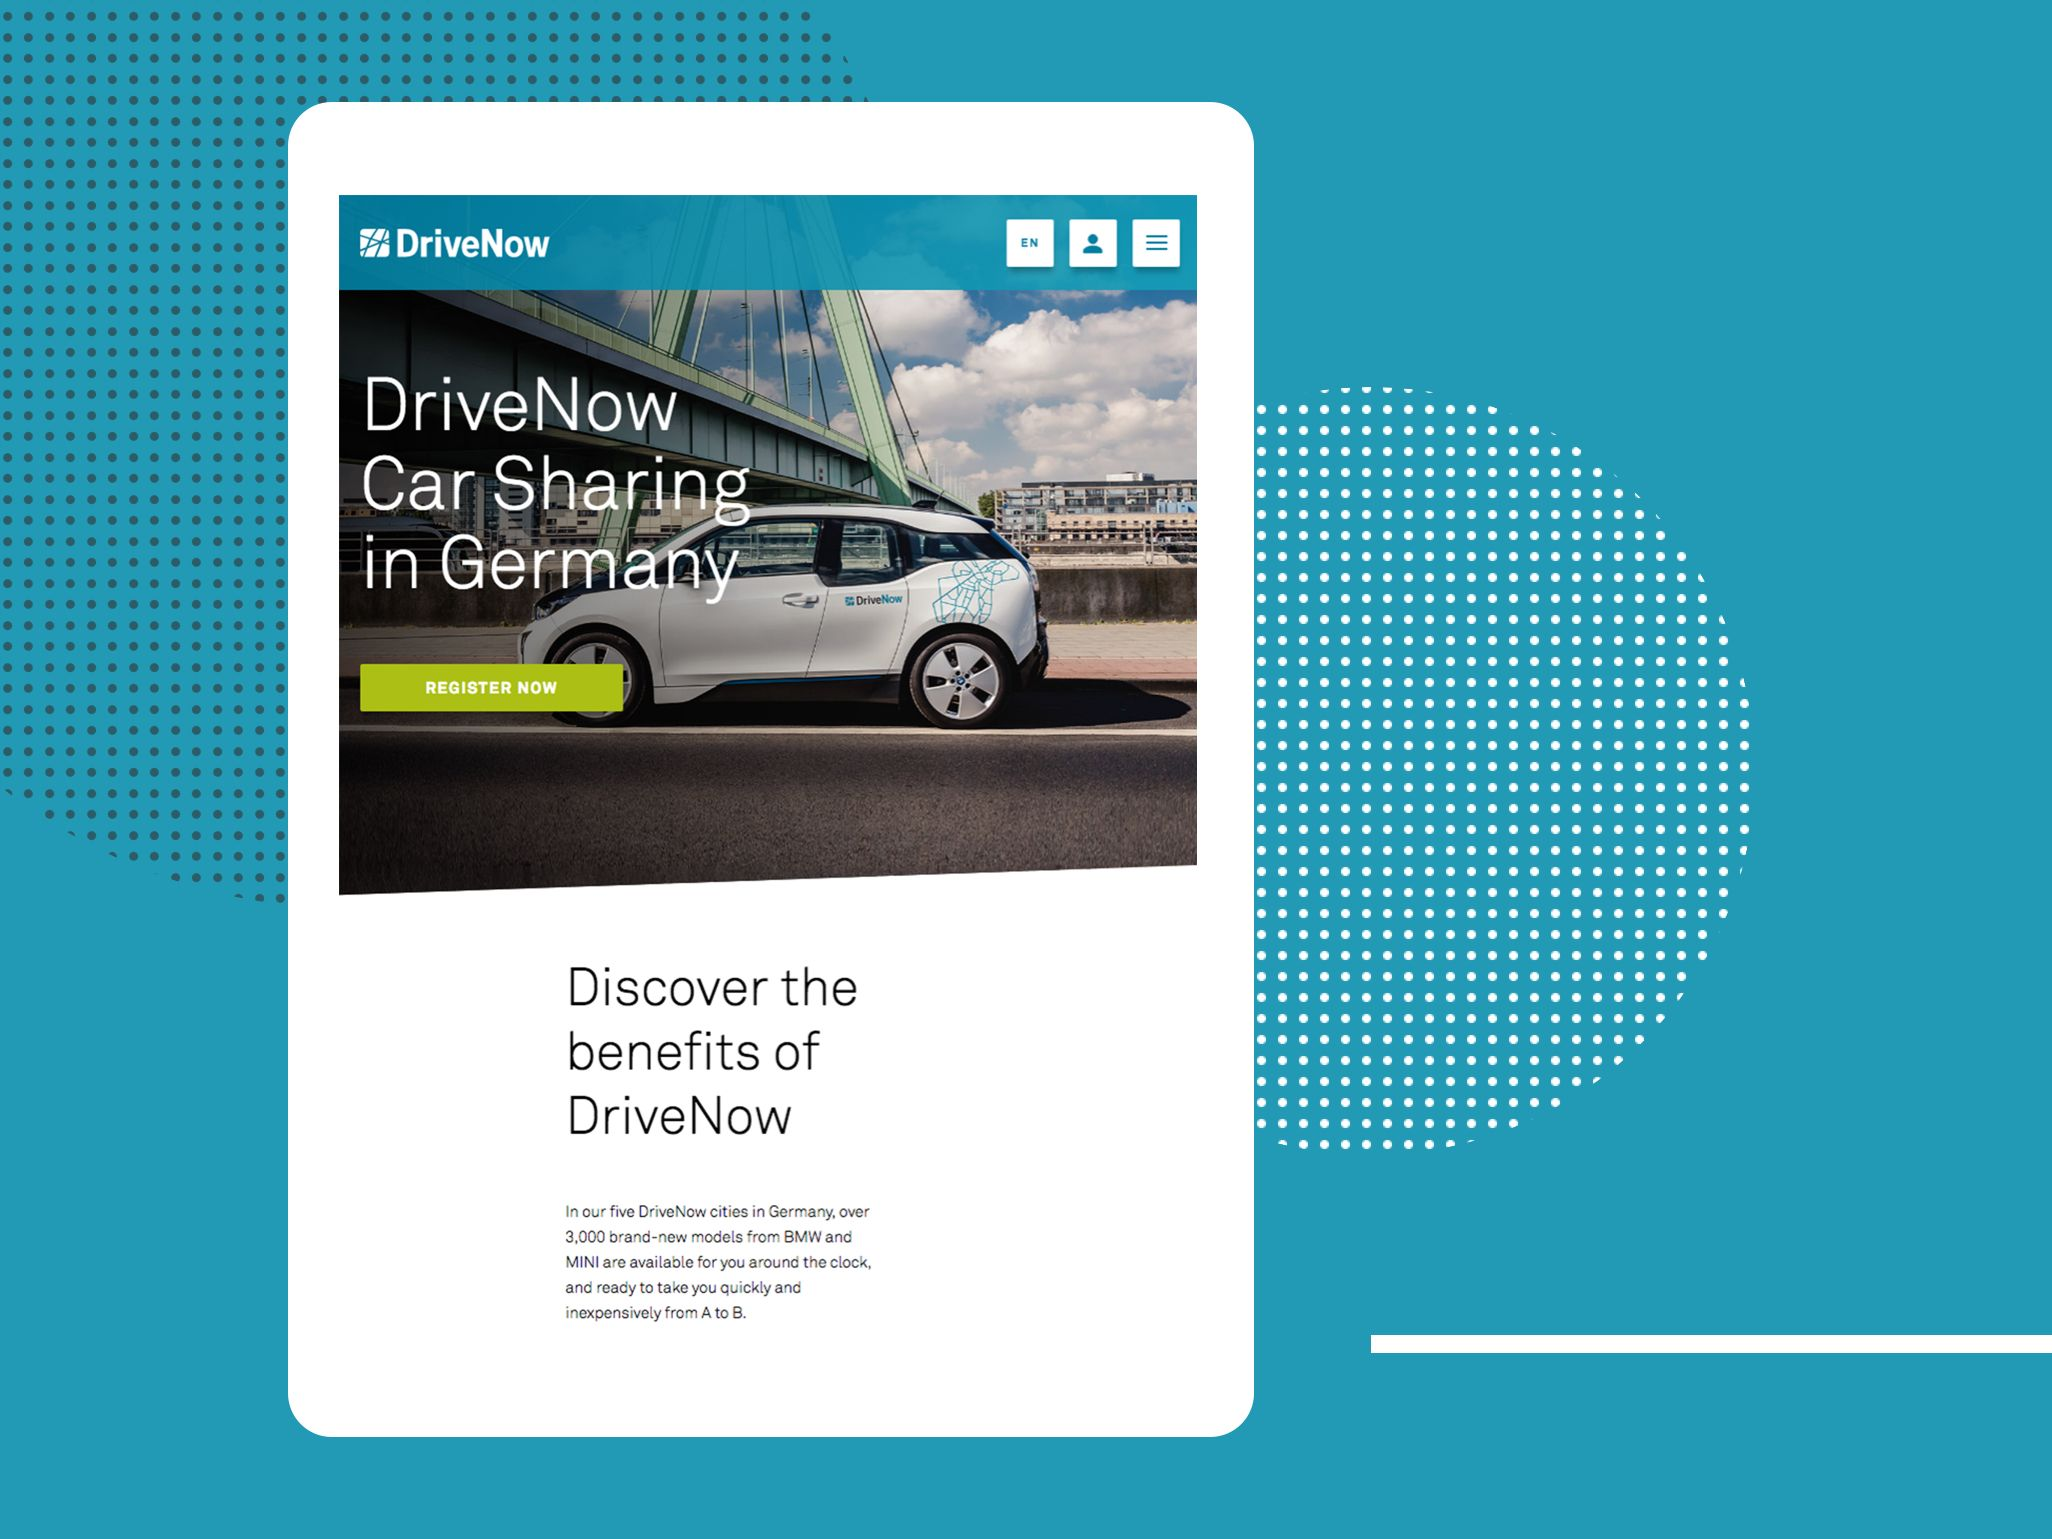 DriveNow - Discover the Benefits of DriveNow